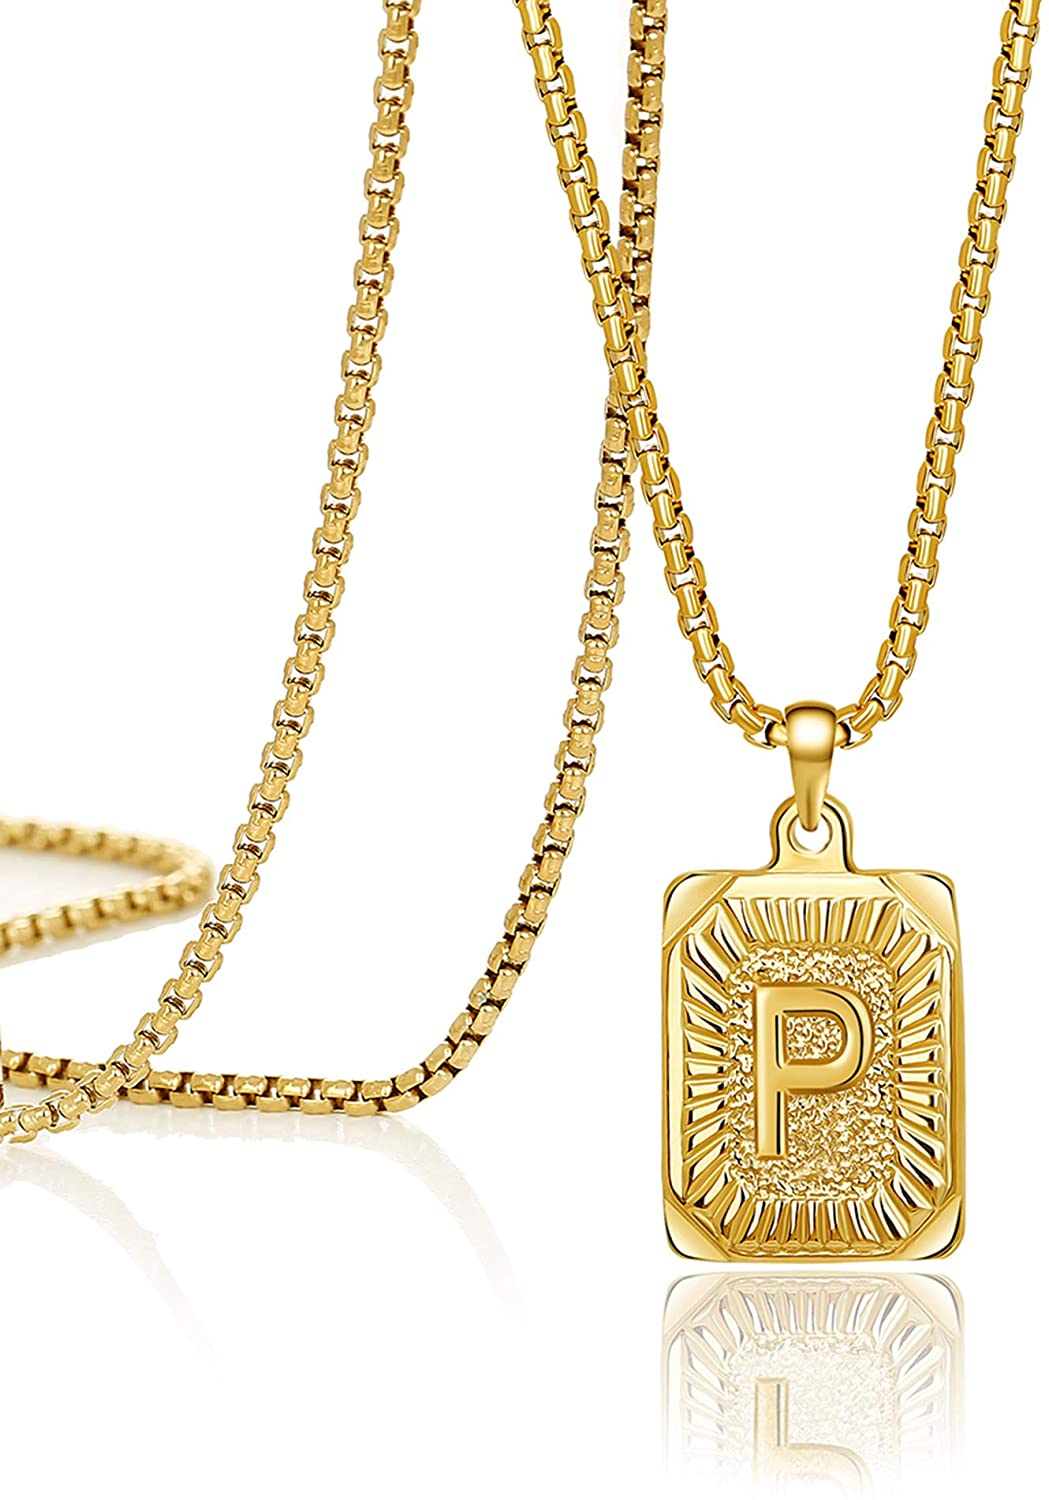 Joycuff 18K Gold Filled Initial Letter Pendant Necklace Square Alphabet Rectangle Medallion Personalized Handmade Stainless Steel Simple Jewelry Gifts for Women Men Teenage Girls Best Friend Mom Dad